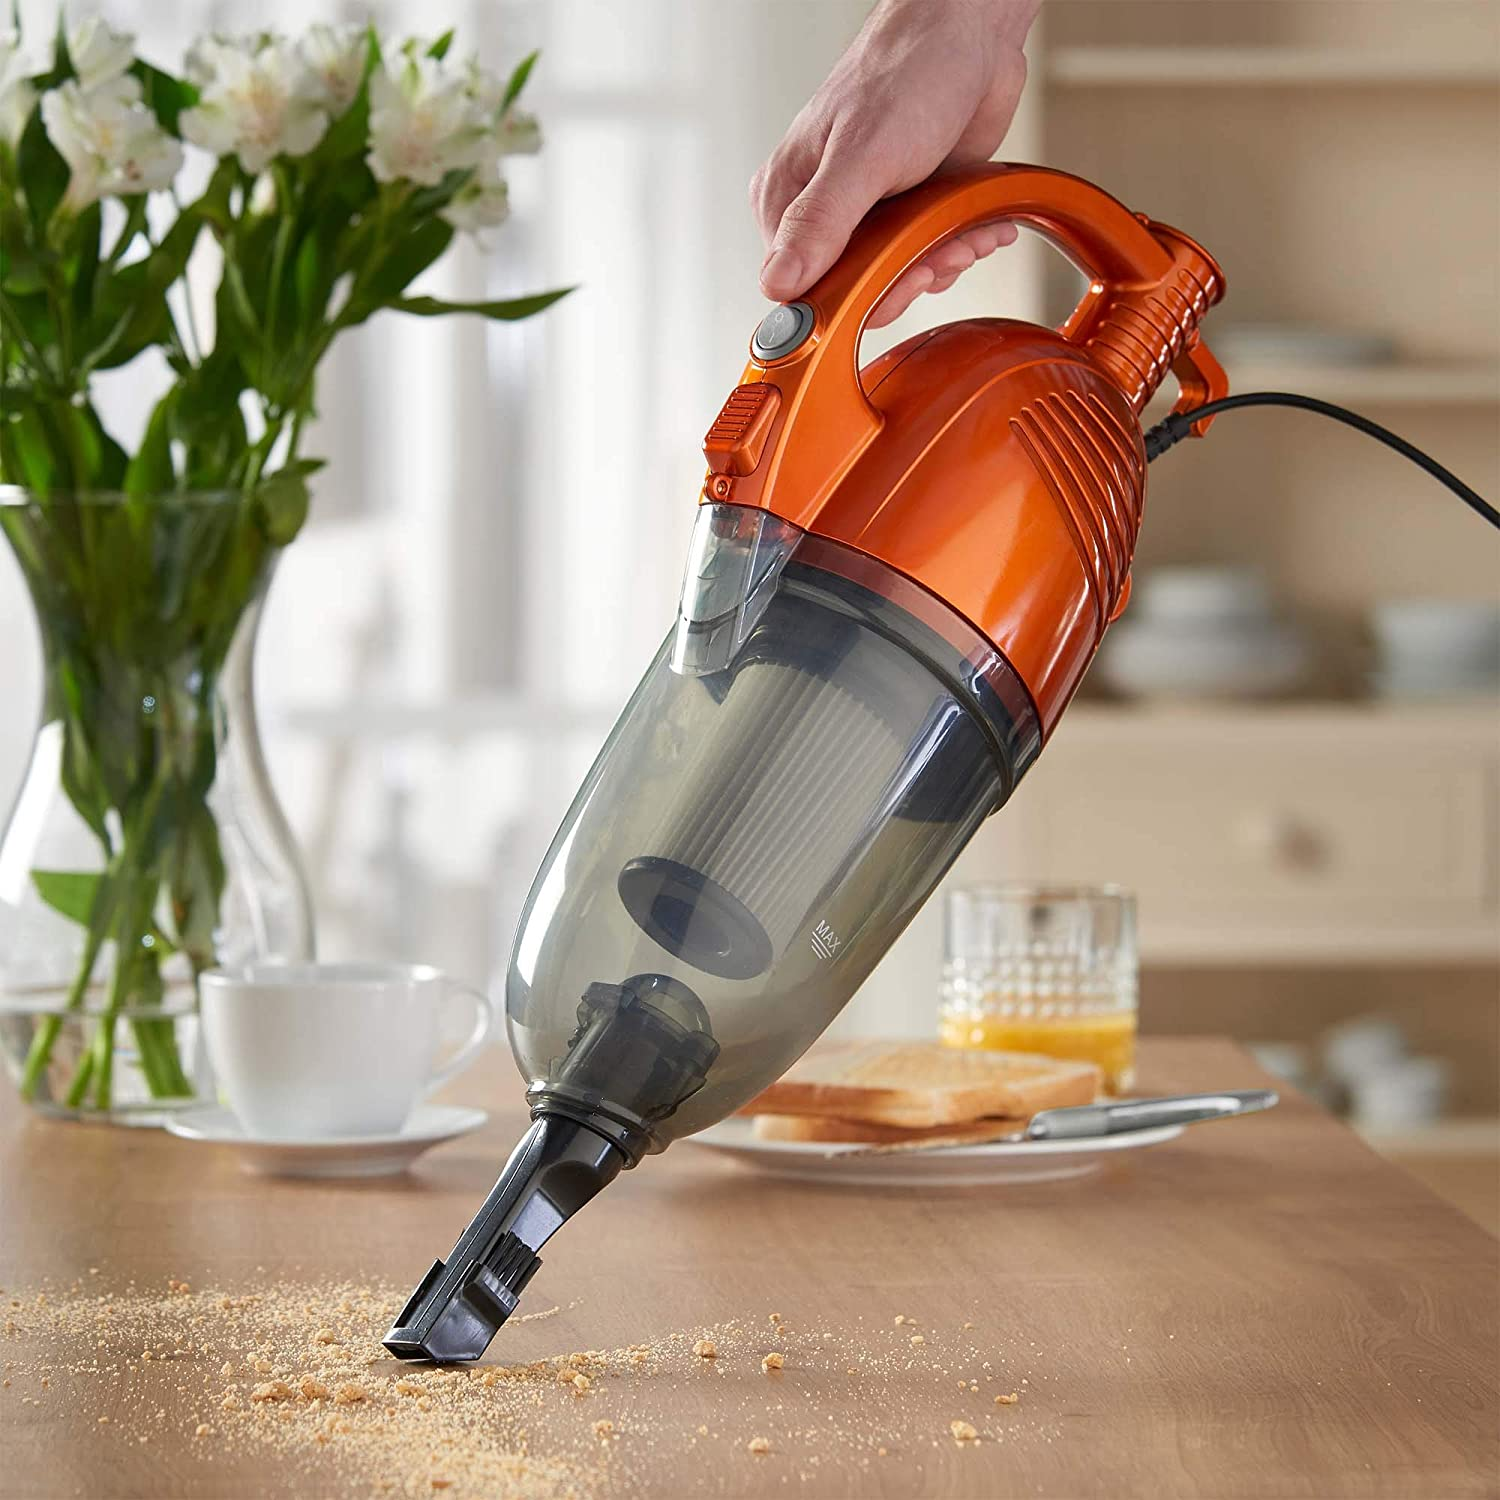 VonHaus 600W 2-in-1 Corded Lightweight Upright Stick & Handheld Vacuum